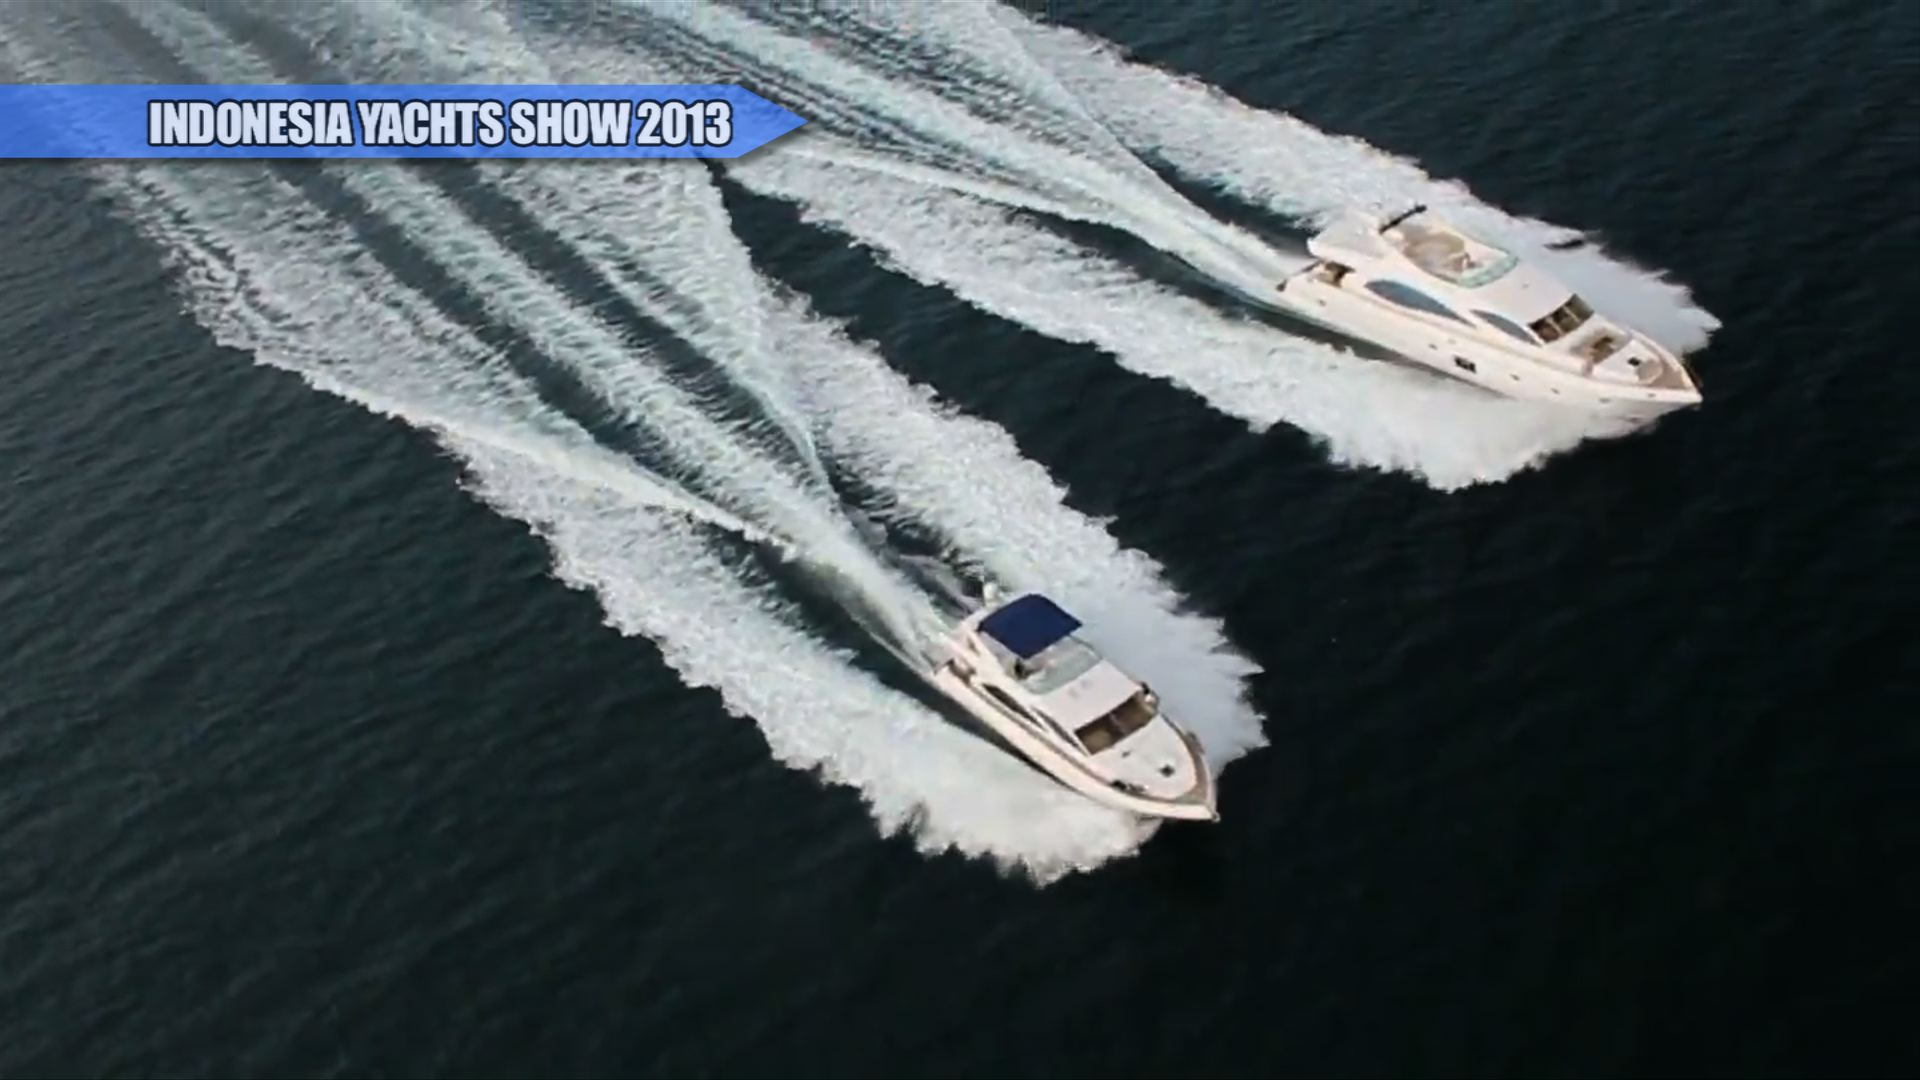 Gulf Craft / Majesty Yachts (Indonesia Yachts Show 2013)